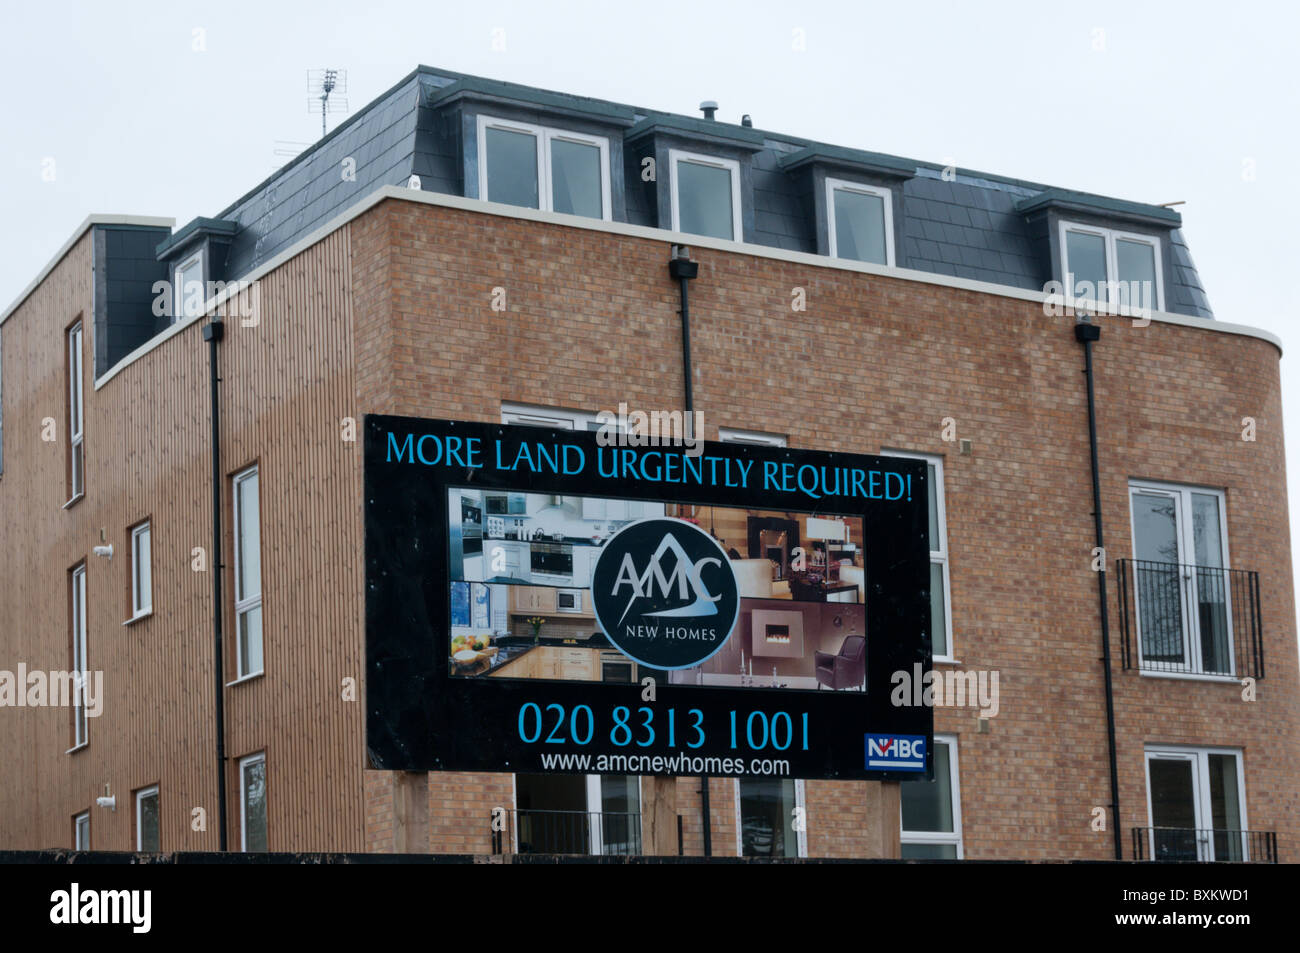 A sign saying 'More land urgently Required!' on a residential building site in South London. - Stock Image